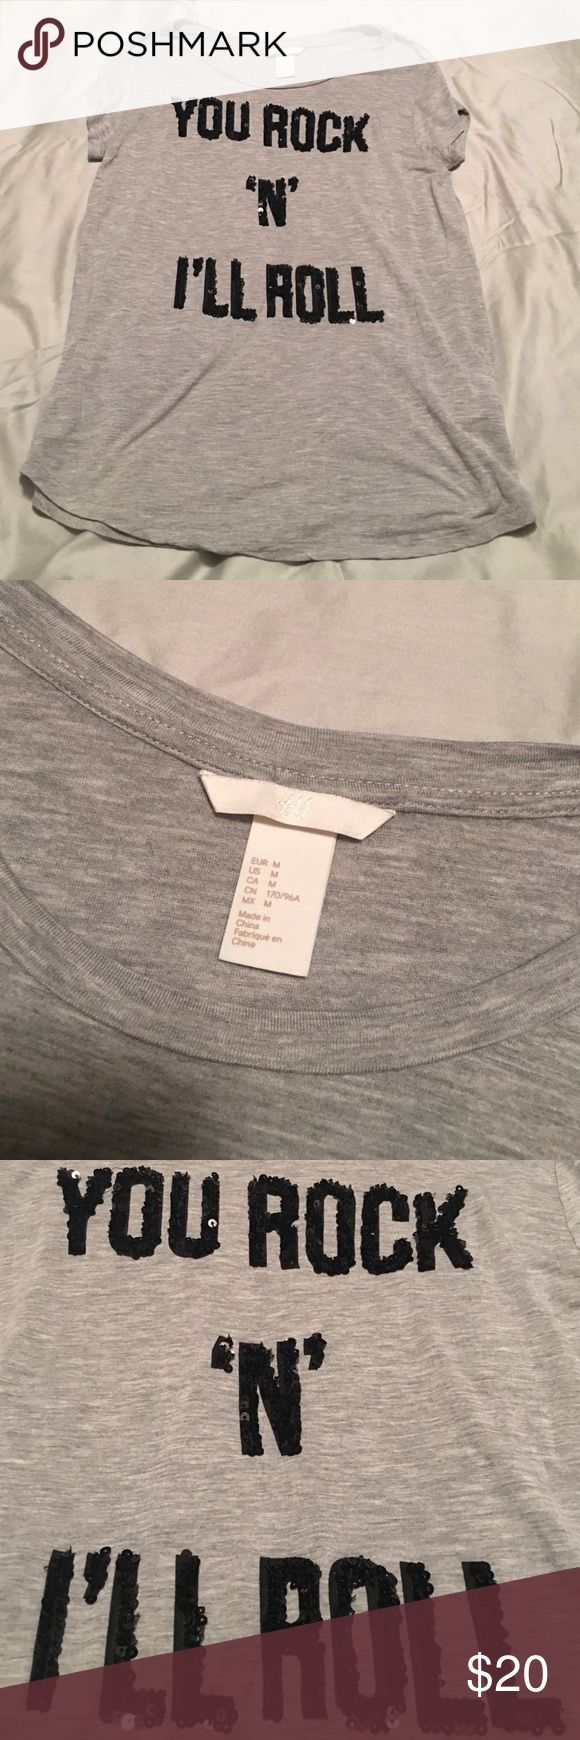 H&M tshirt with sequence quote H&M tshirt in gray with sequins quote. Very cute under a blazer. Barely worn. H&M Tops Tees - Short Sleeve